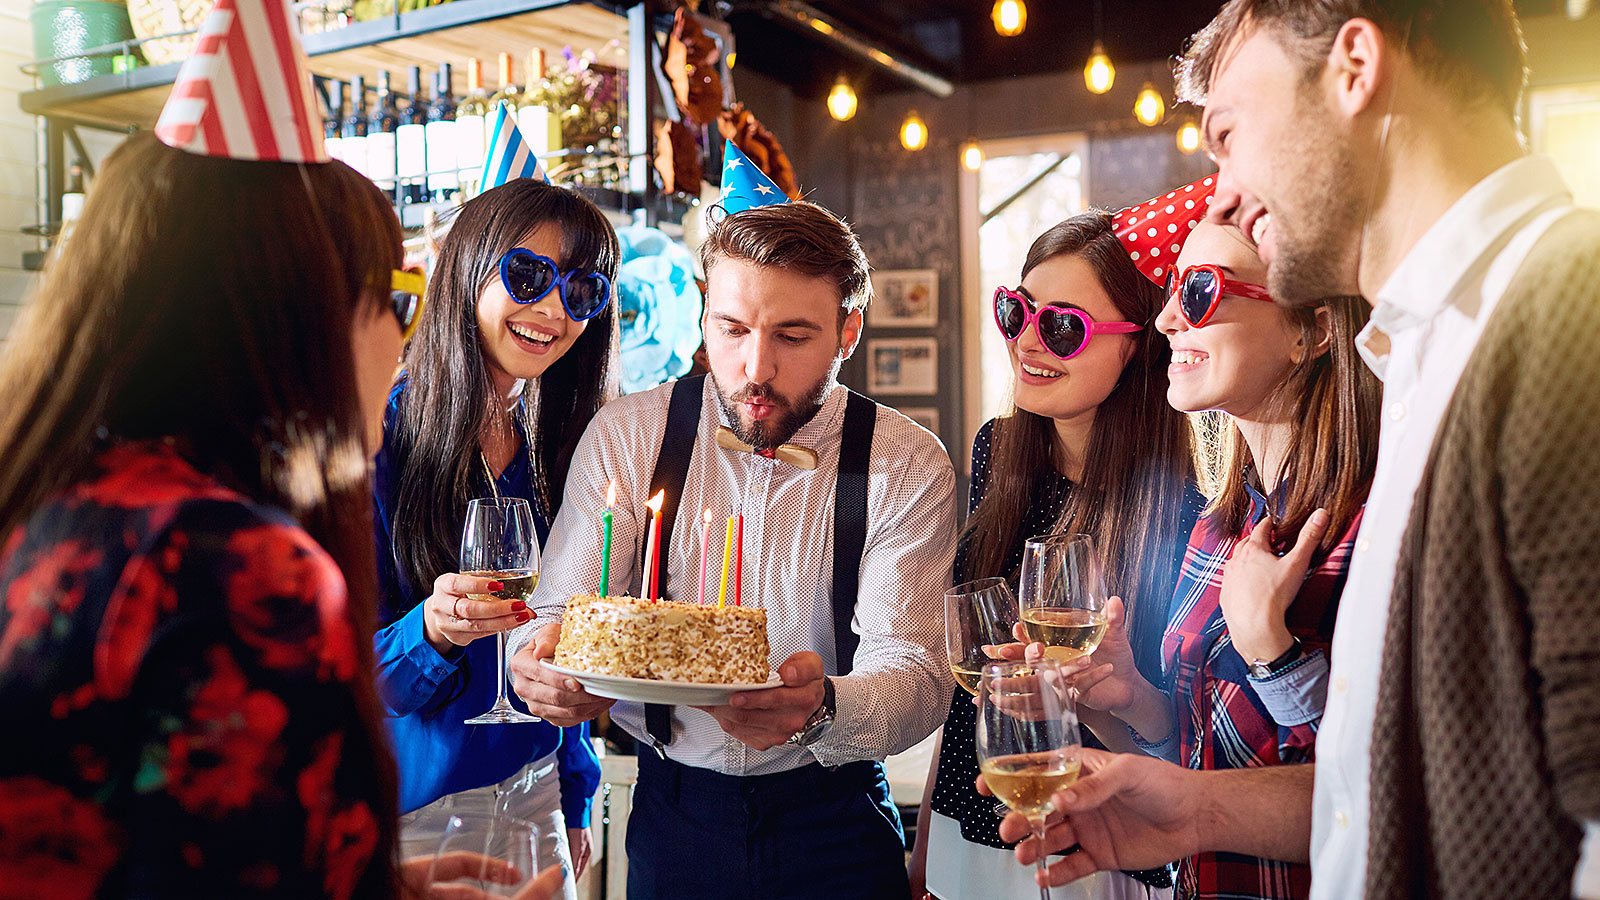 Study: People really don't want to go to your birthday party or wedding